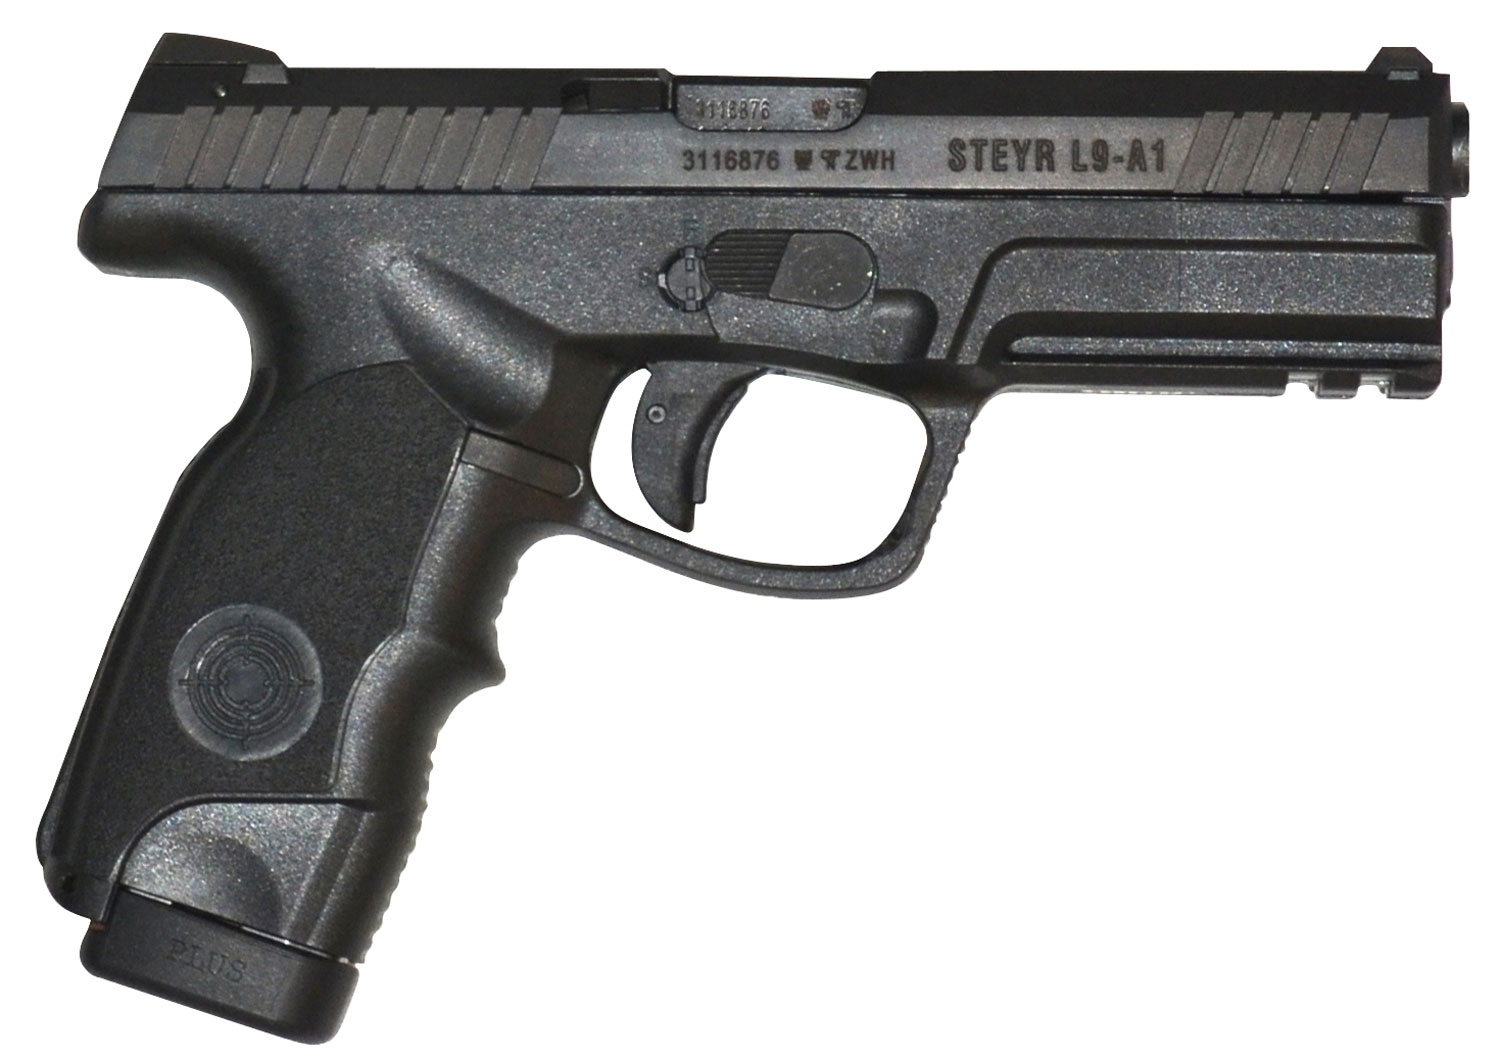 Steyr 39.621.2K L9-A1 Double 9mm 4.5